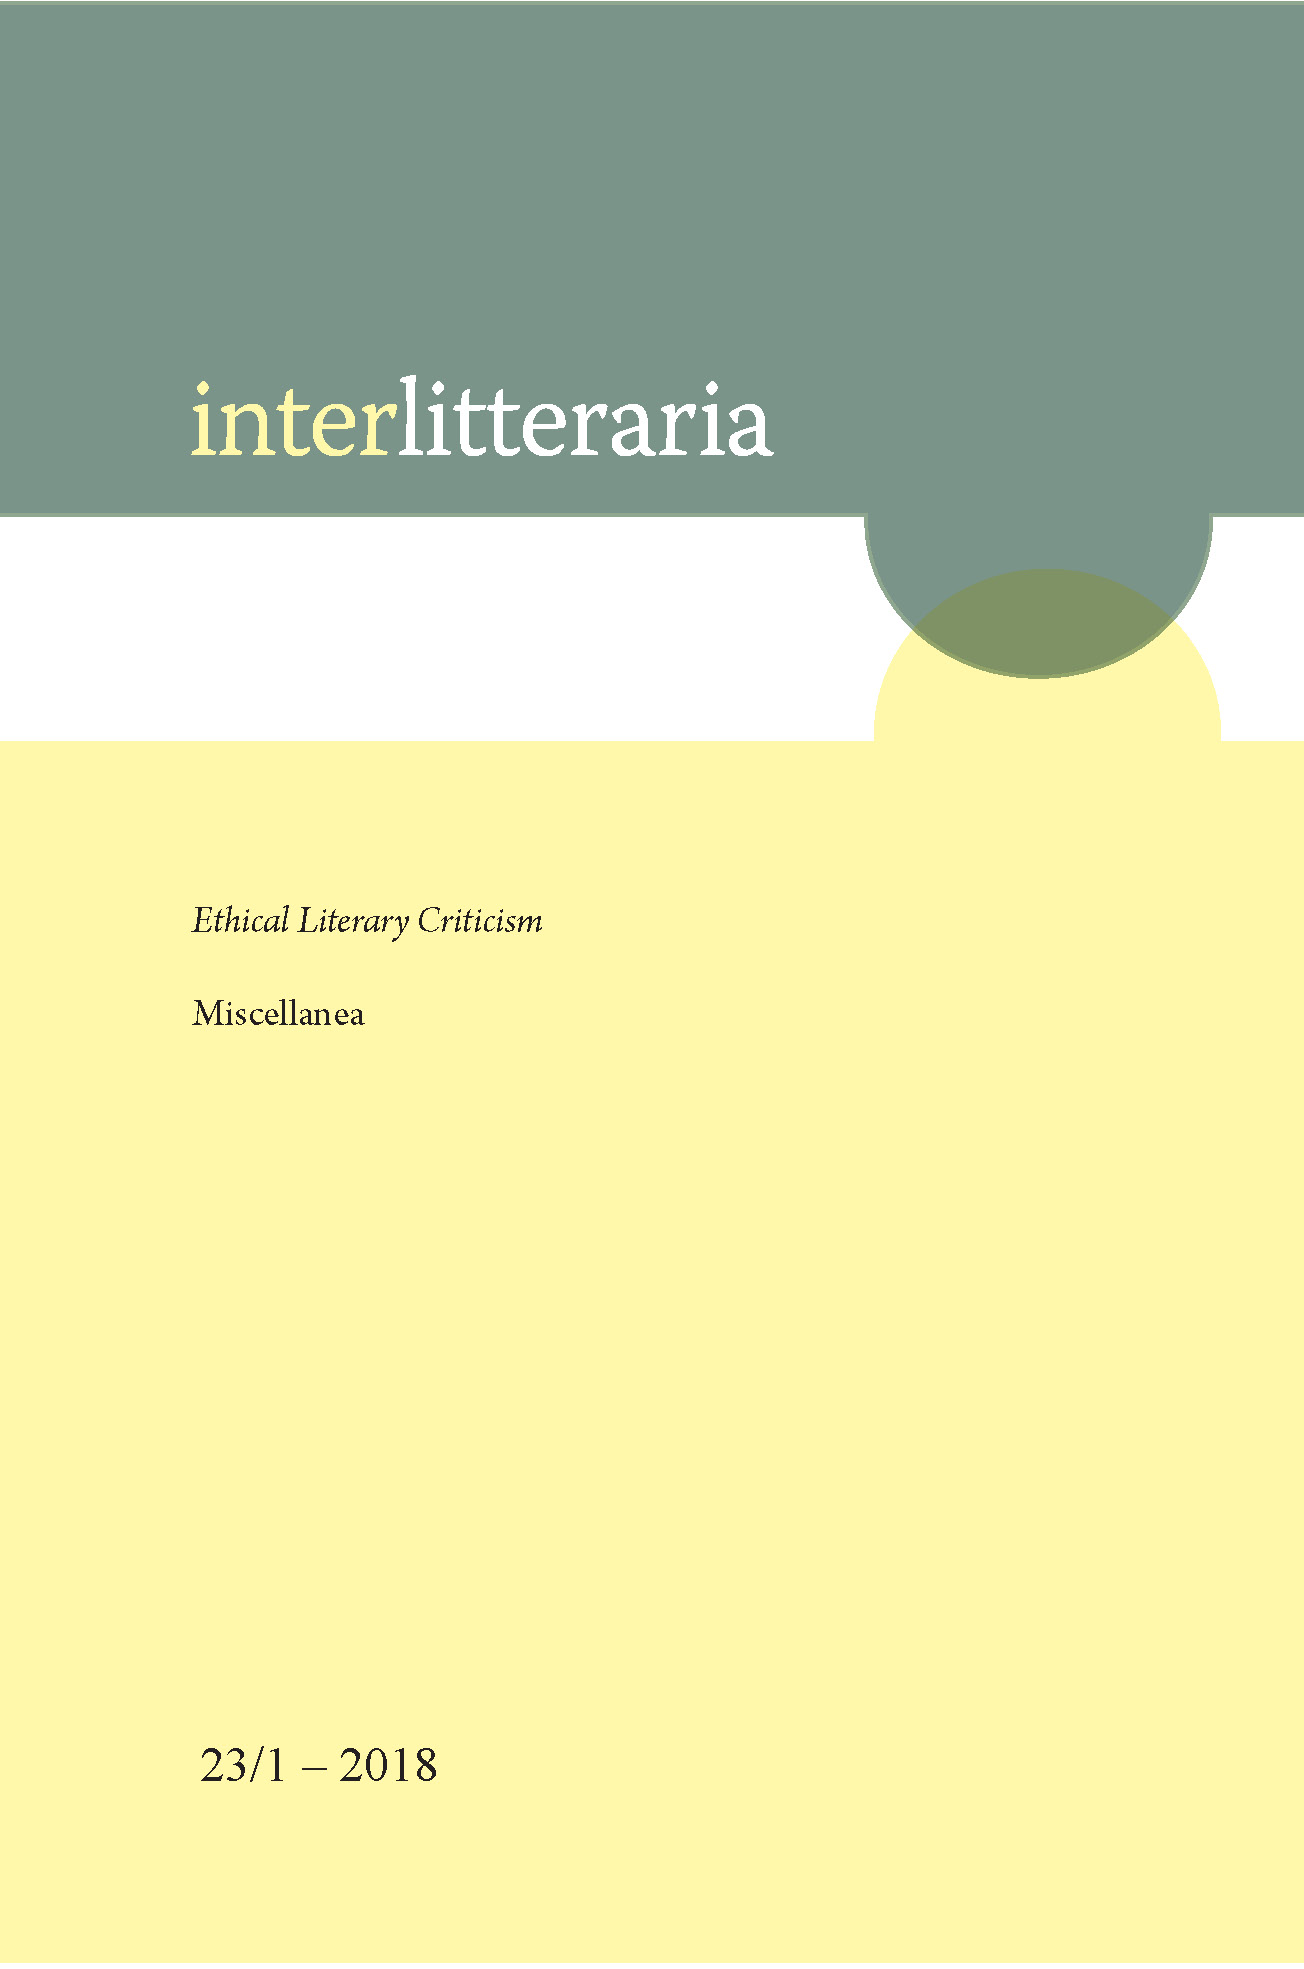 Nineteenth-Century Sentimental and Popular Trends and their Transformation in Fin-de-siècle Latvian Literature